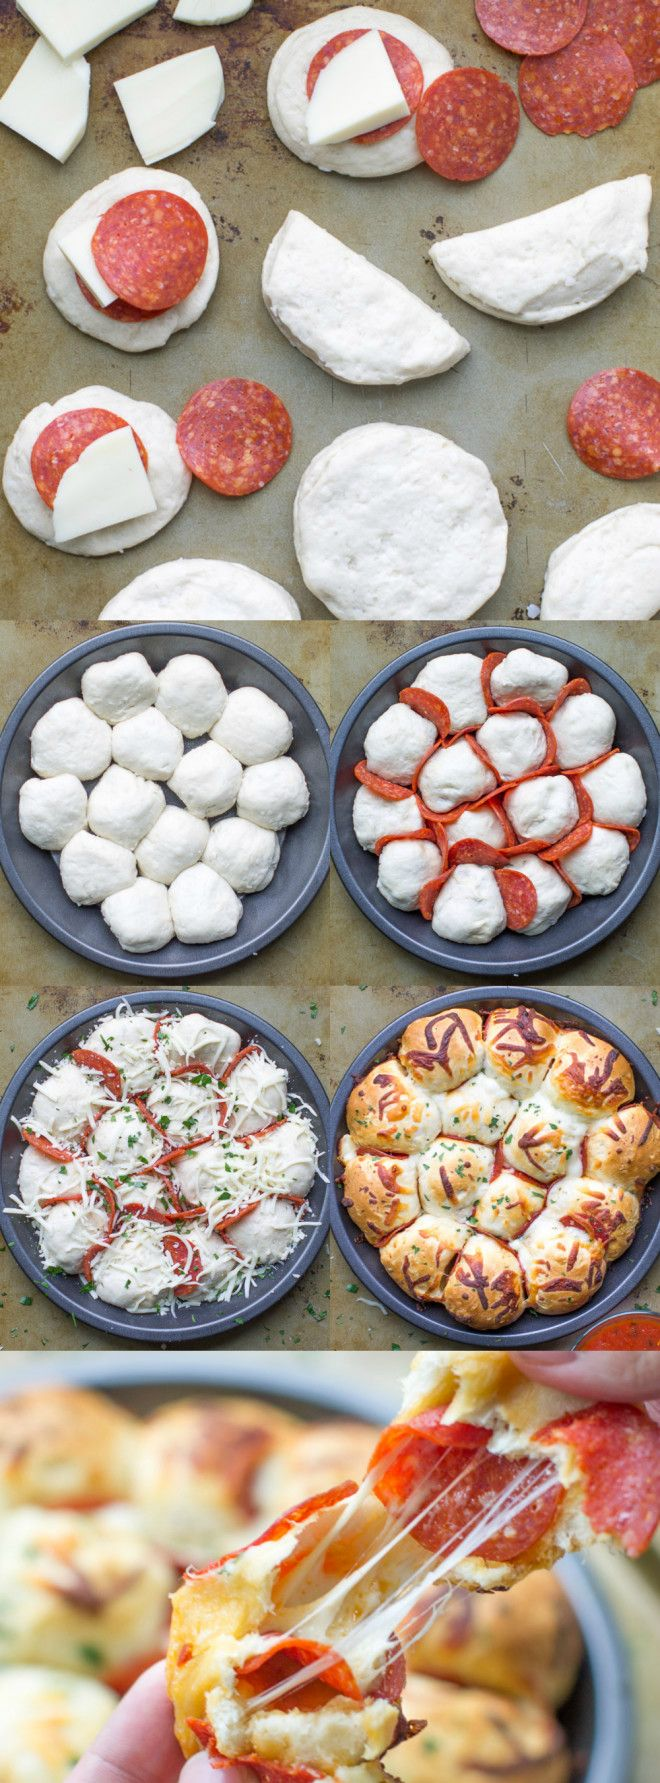 Skip the pizza delivery! Enjoy these easy, cheesy pepperoni Pizza Bites hot and fresh from the oven. You'll want to double the batch!